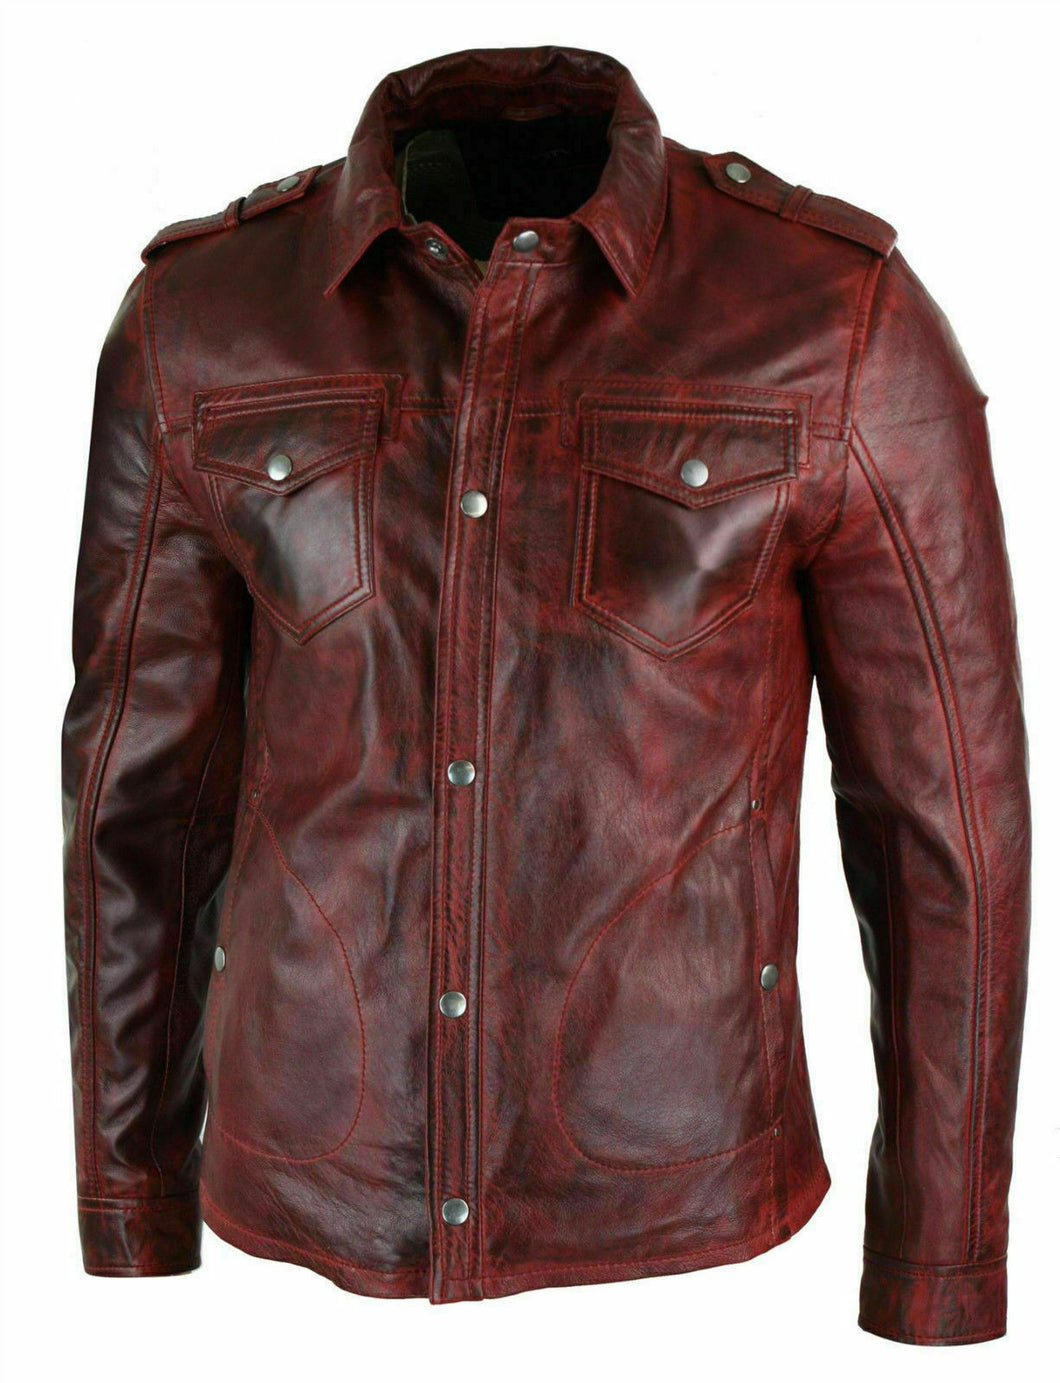 New Men's Shirt Jacket Maroon Real Soft Genuine Waxed Leather Shirt Leather for Mens - theleathersouq